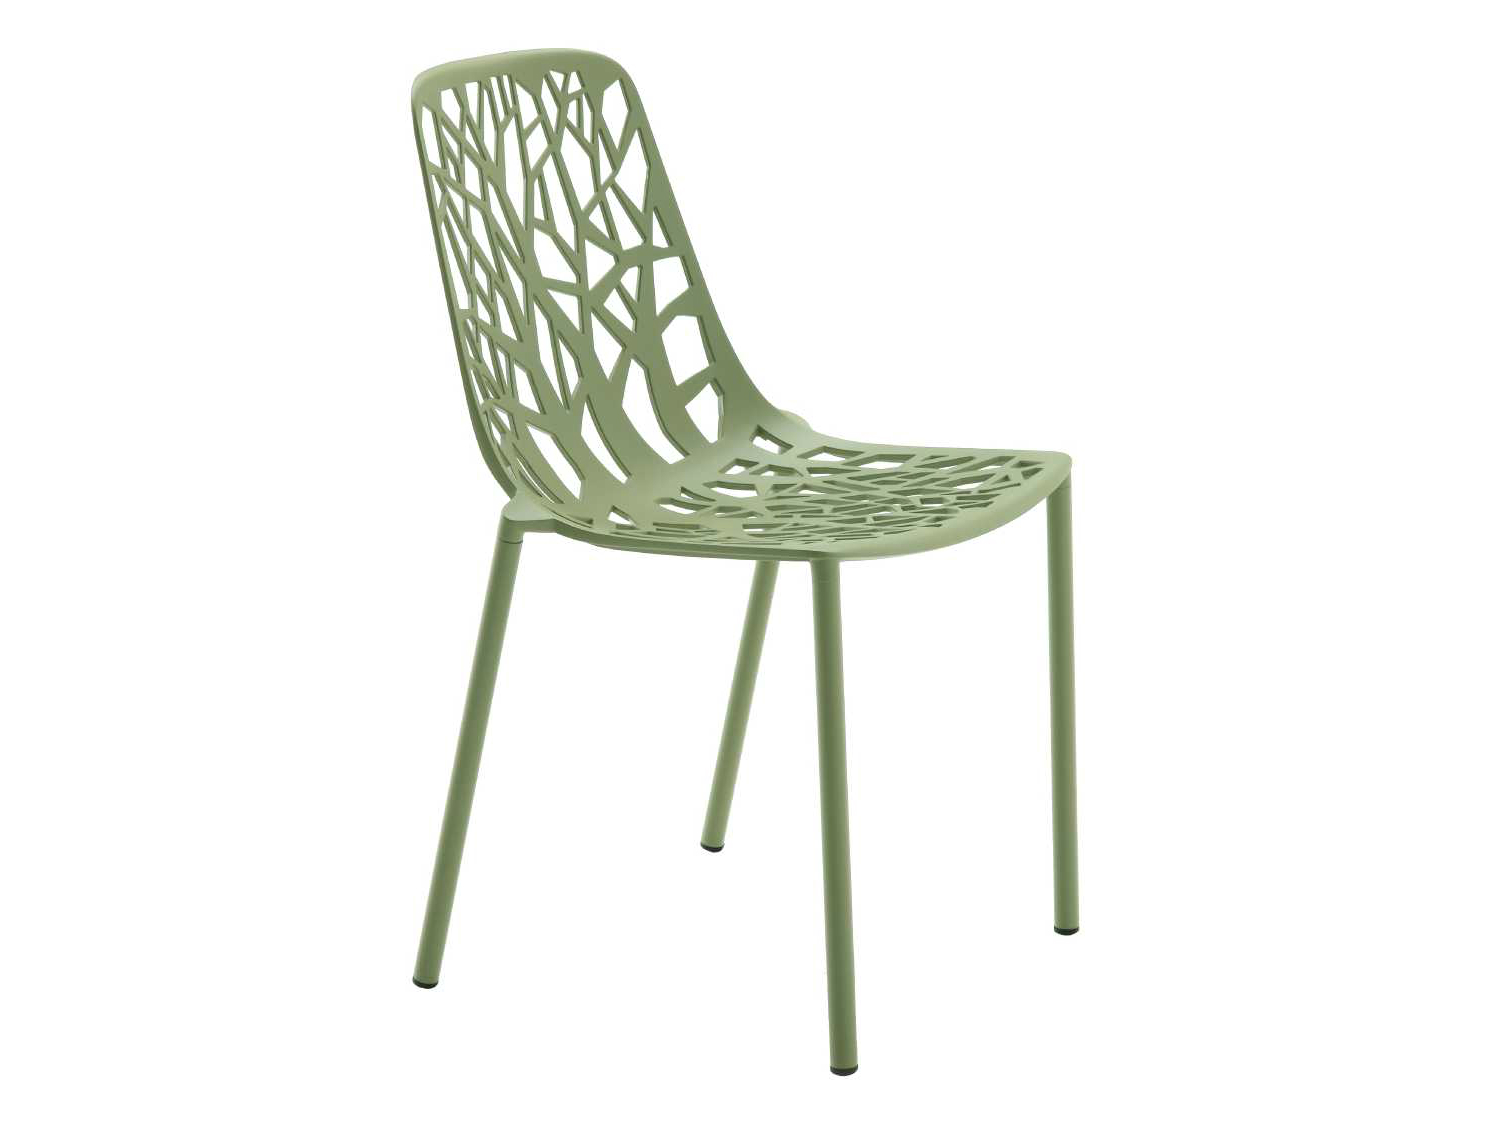 Fast-forest-chair-sagegreen-def